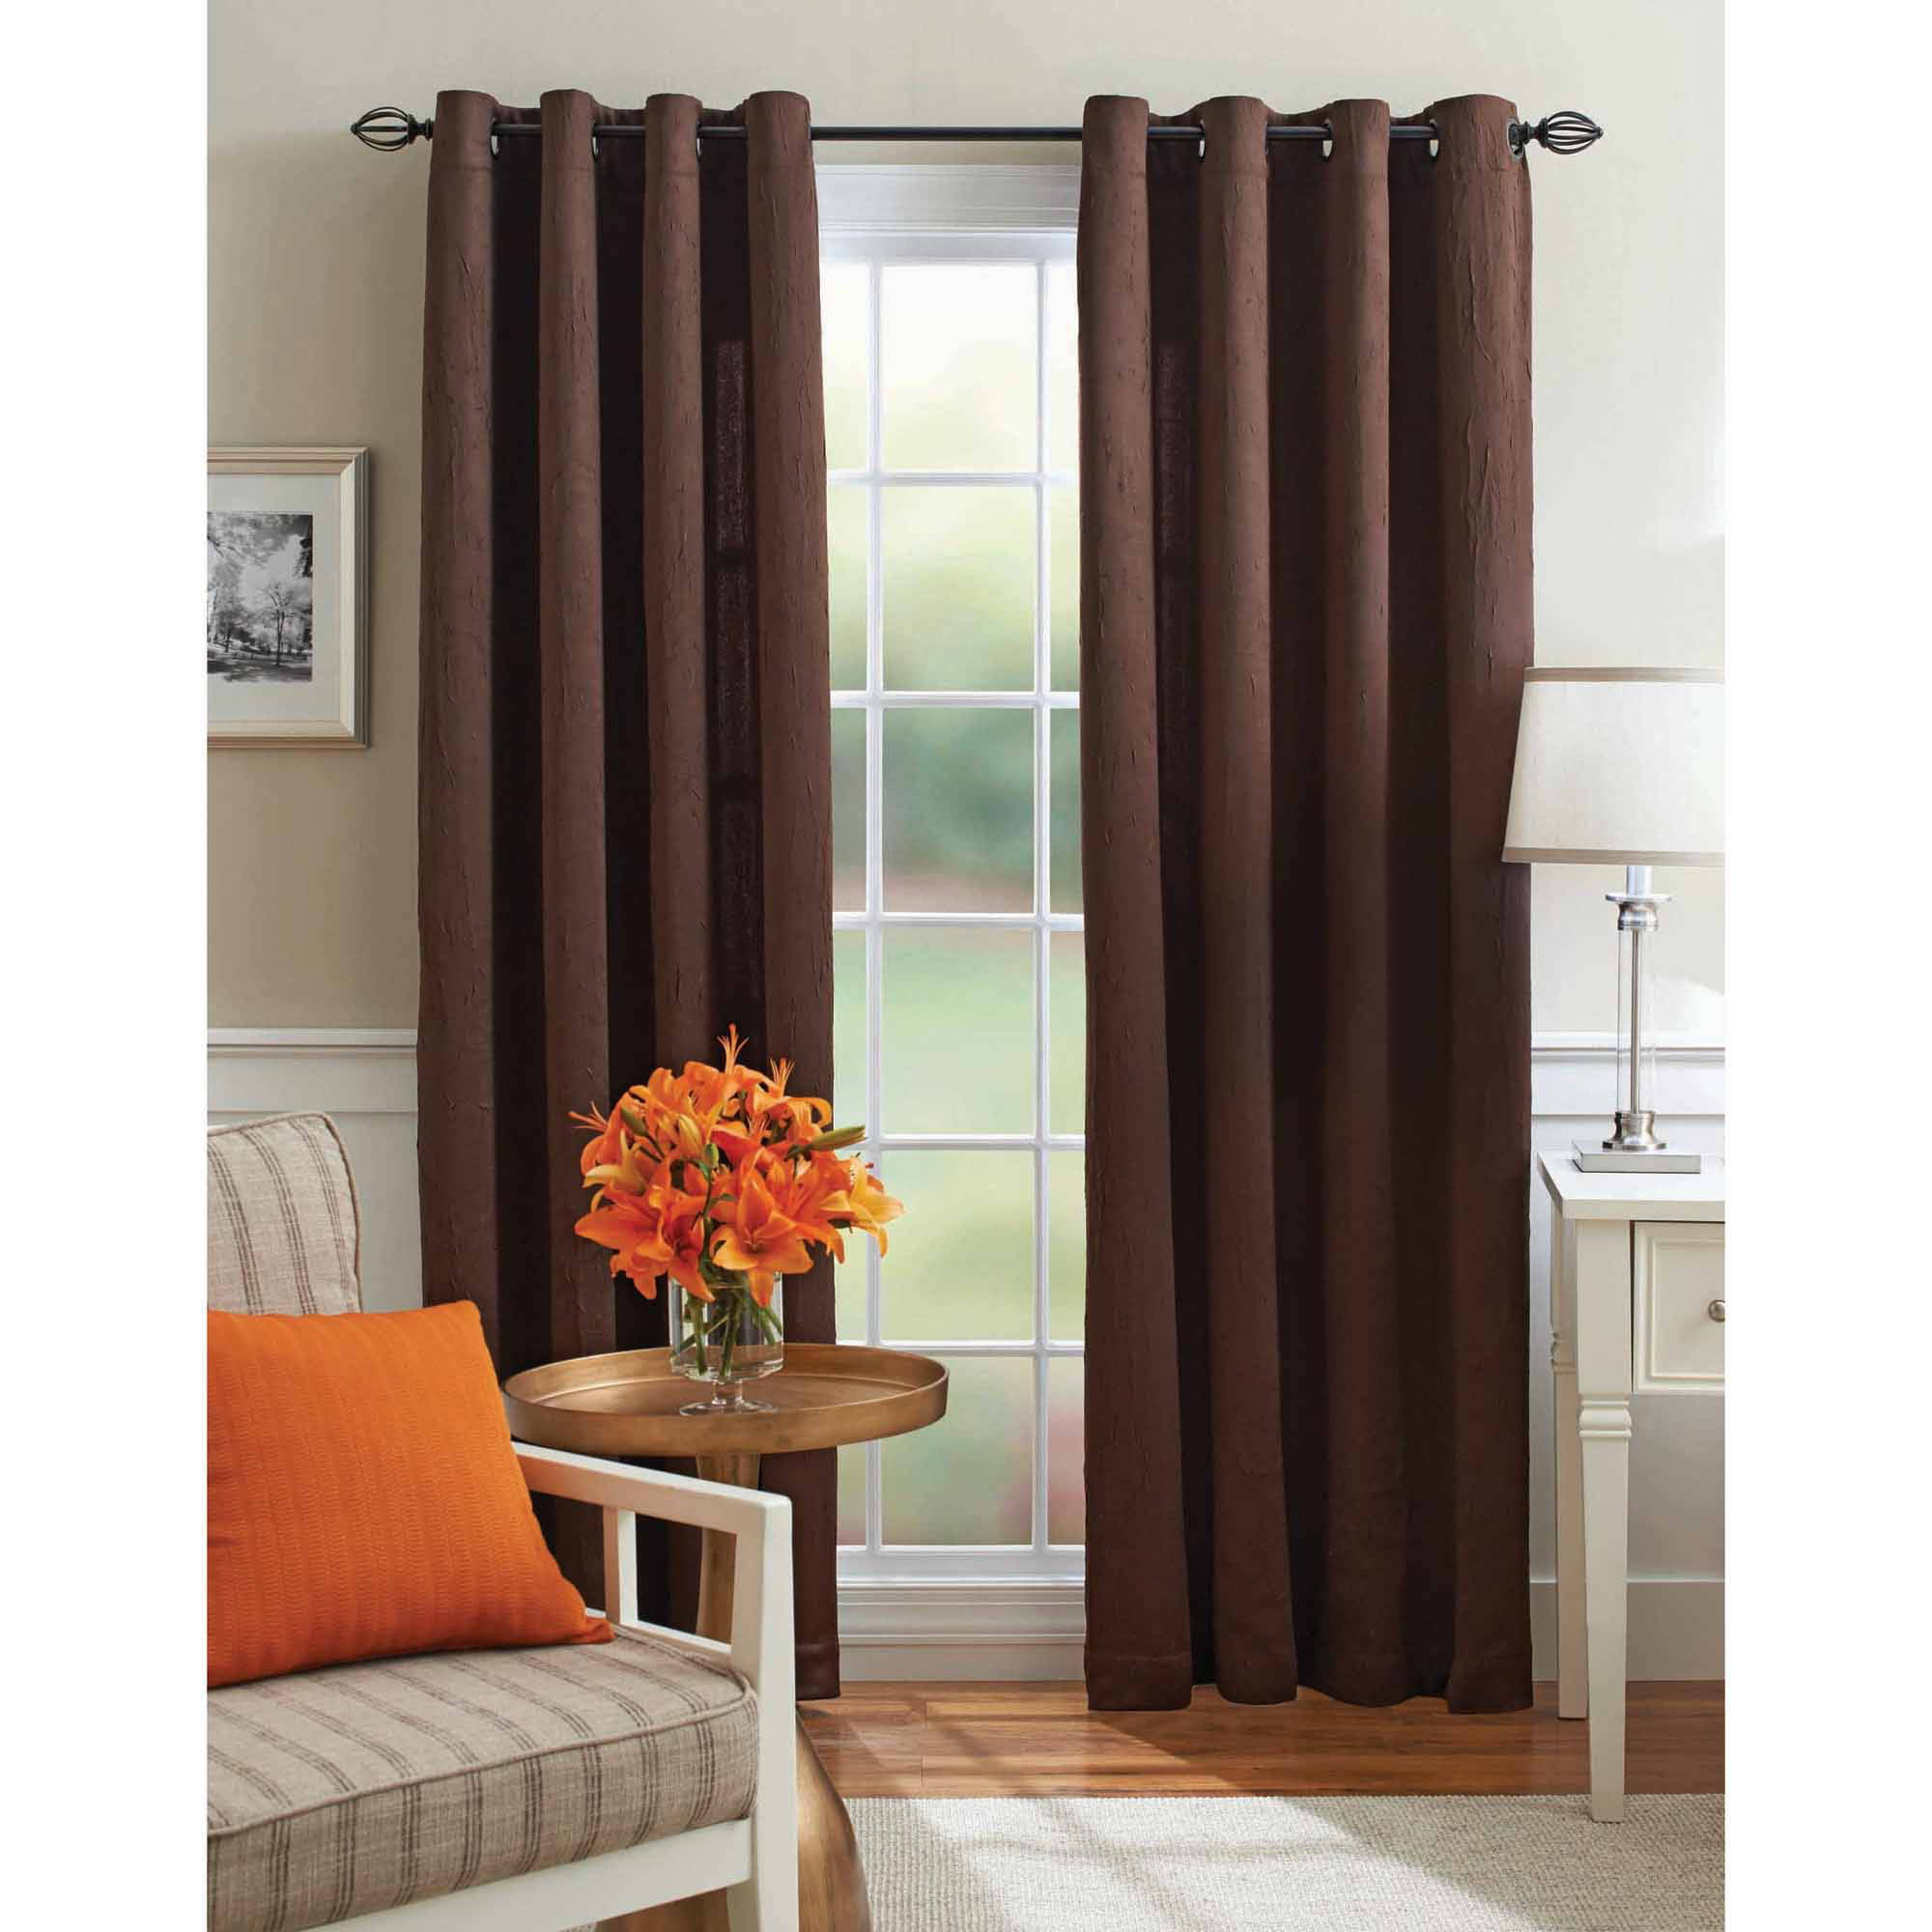 Better Homes And Gardens Semi Sheer Grommet Curtain Panel Bleached Linen